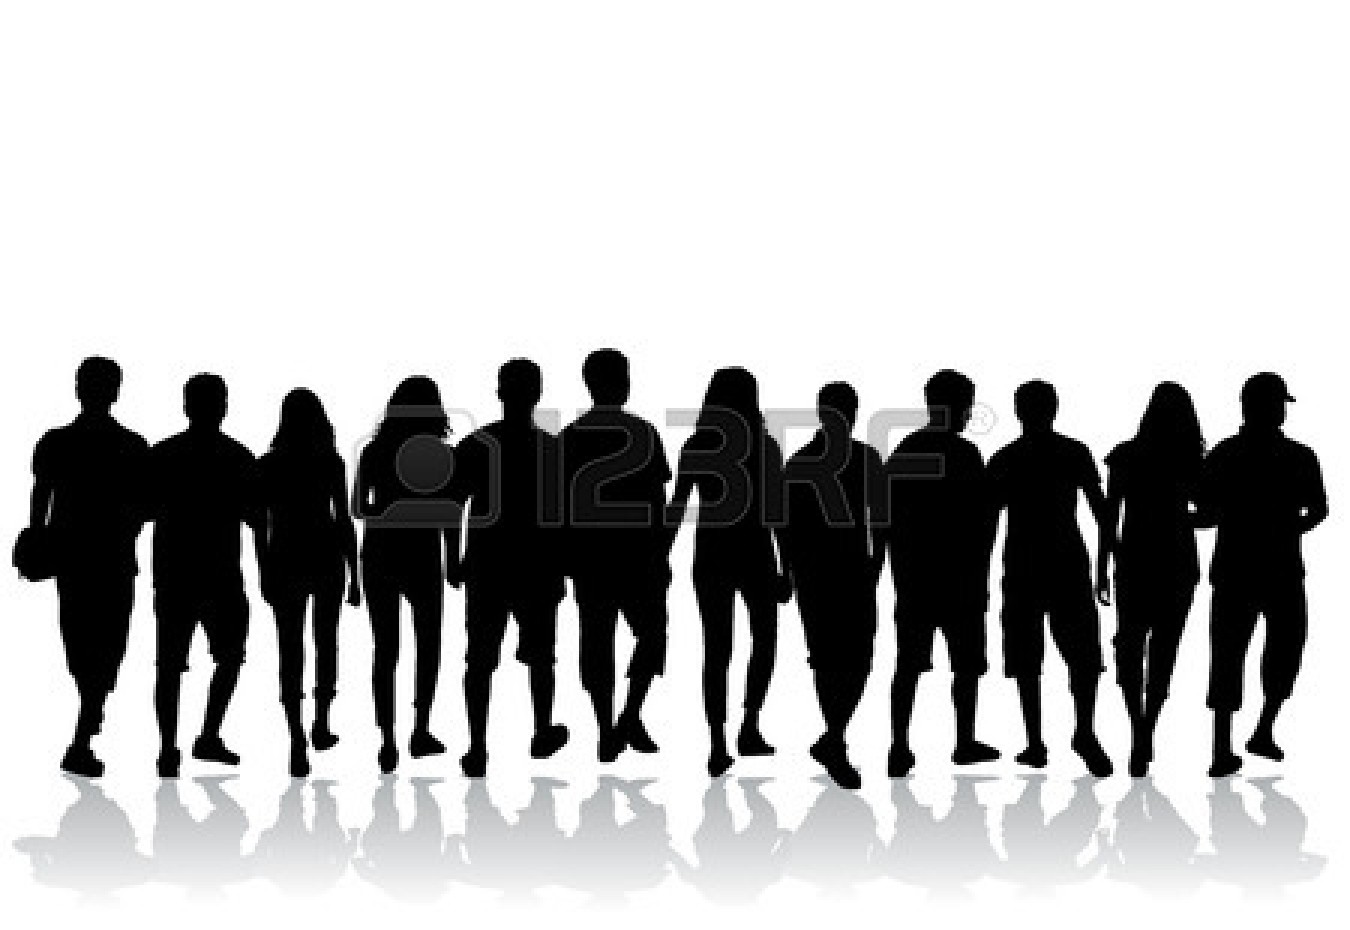 20 people clipart clip art freeuse library crowd of people - vector | Clipart Panda - Free Clipart Images clip art freeuse library